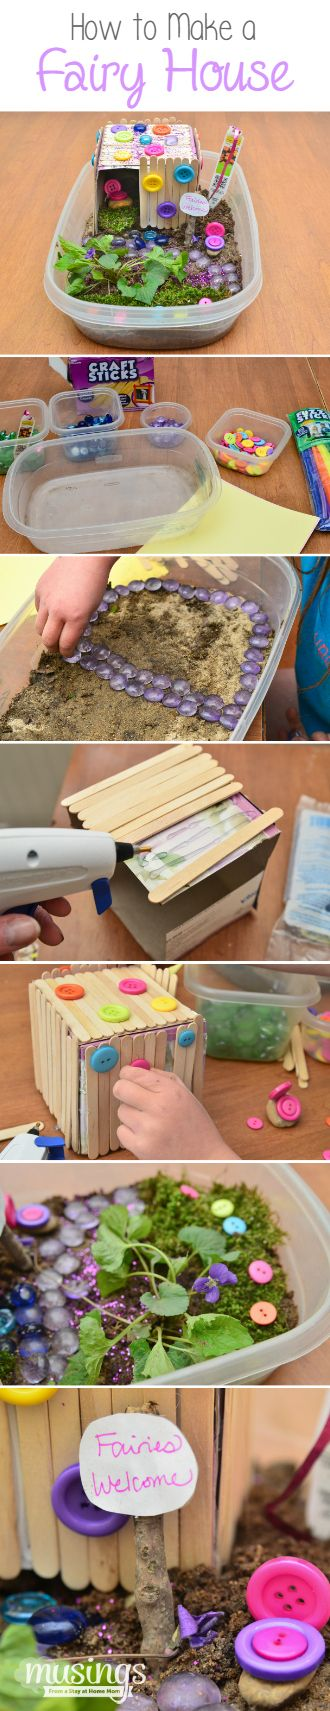 Making a Fairy House craft is such a fun easy activity for kids! It's a great way for kids to let their imaginations run wild and do a fun project with Mom. And you'll be surprised at how much fun you'll have helping them craft their house too!